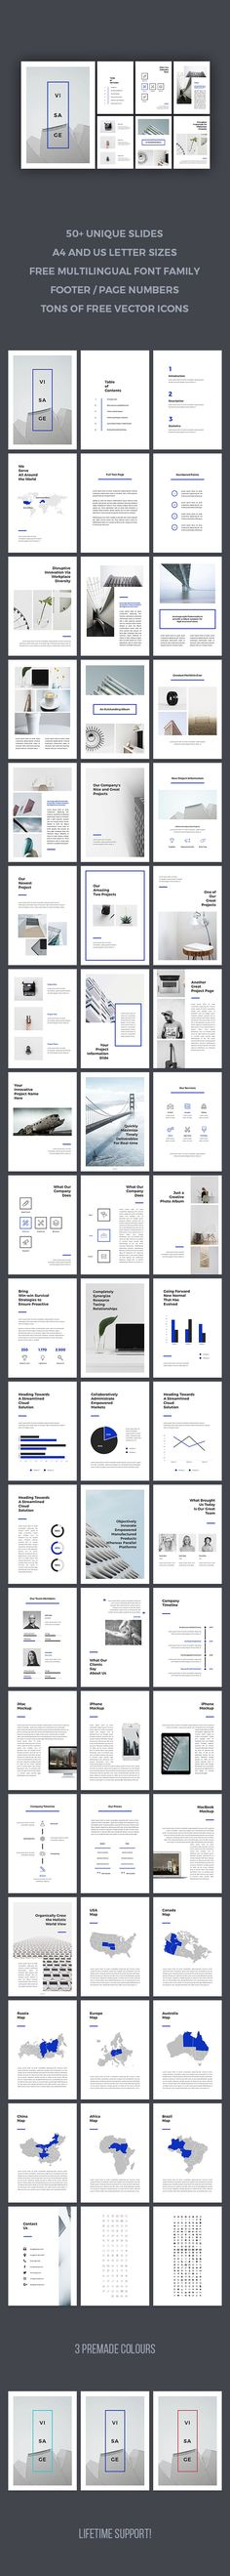 Very simple, clean design layout. This would be too clean for my resume, but certain design elements are noteworthy in this. Web Design, Book Design, Layout Design, Graphic Design, Portfolio Layout, Portfolio Design, Editorial Layout, Editorial Design, Brochure Design